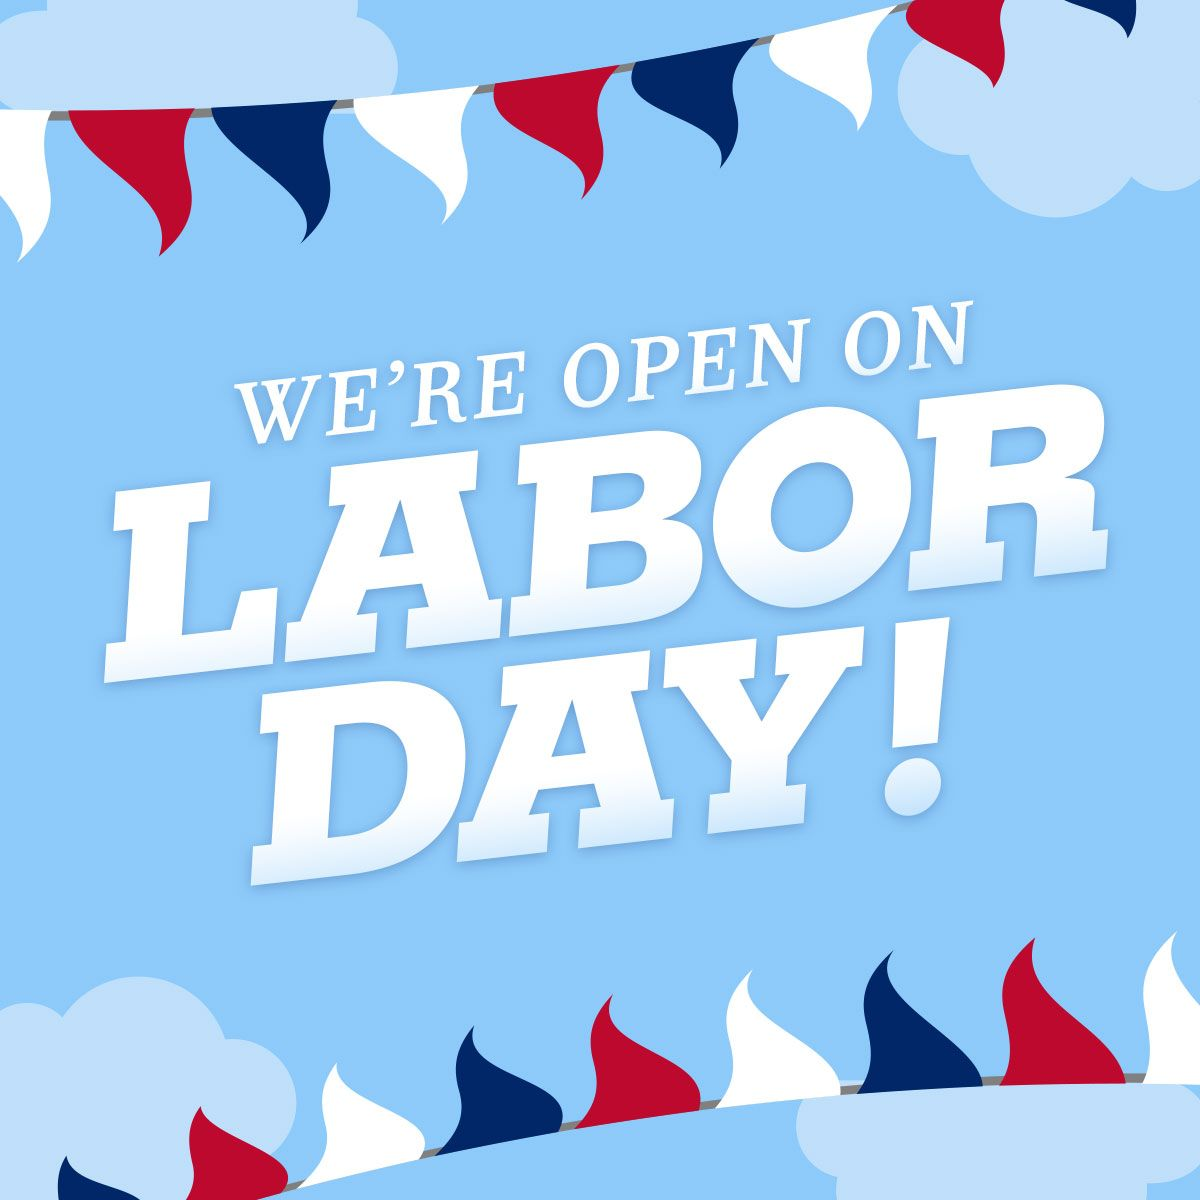 We Are Open On Labor Day We Invite You To Come To The Dealership And Take Advantage Of Our Special Labor Day Offers S Chickasha Cars For Sale Round Rock Tx